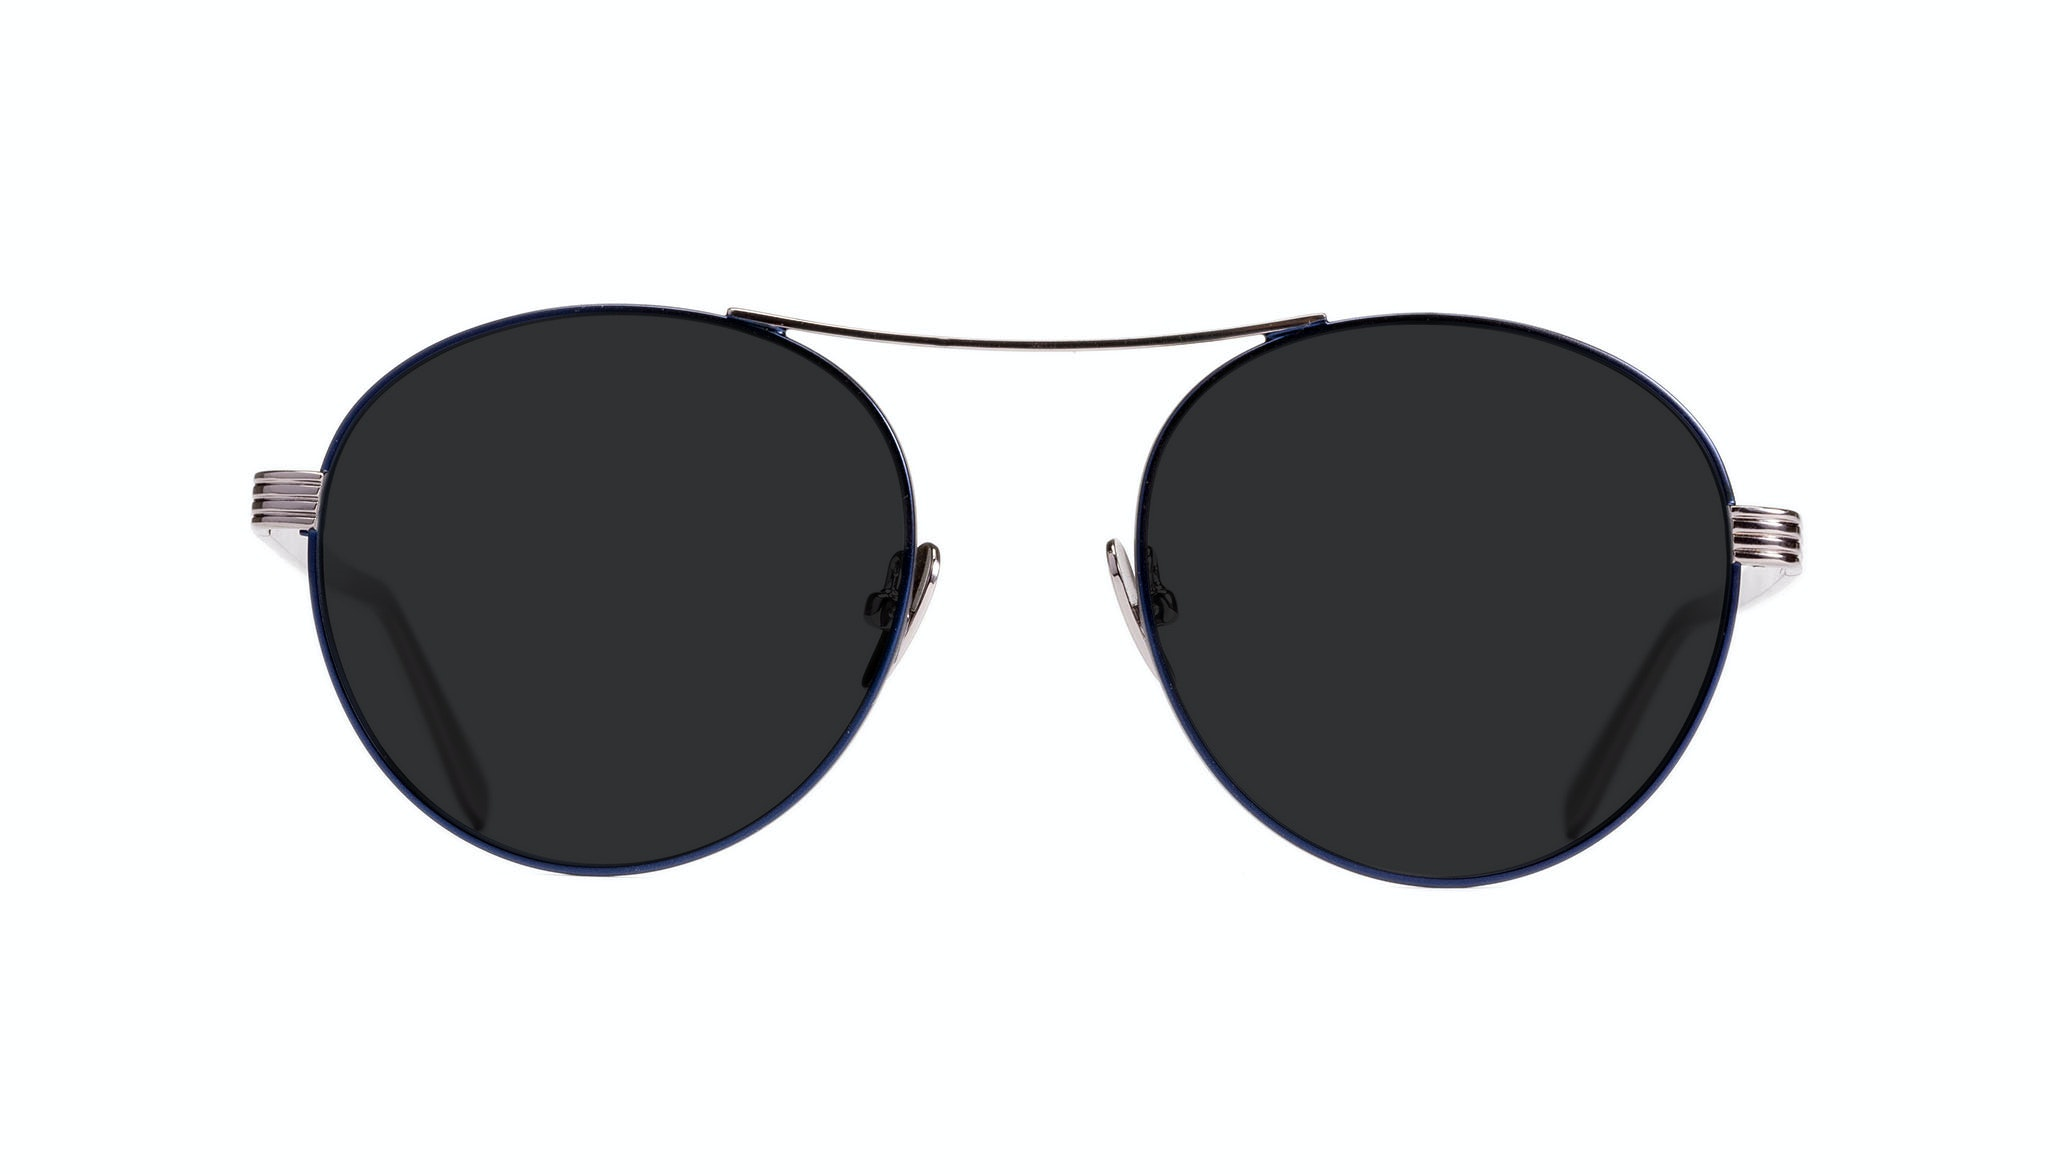 Affordable Fashion Glasses Round Sunglasses Women Prize Midnight Front